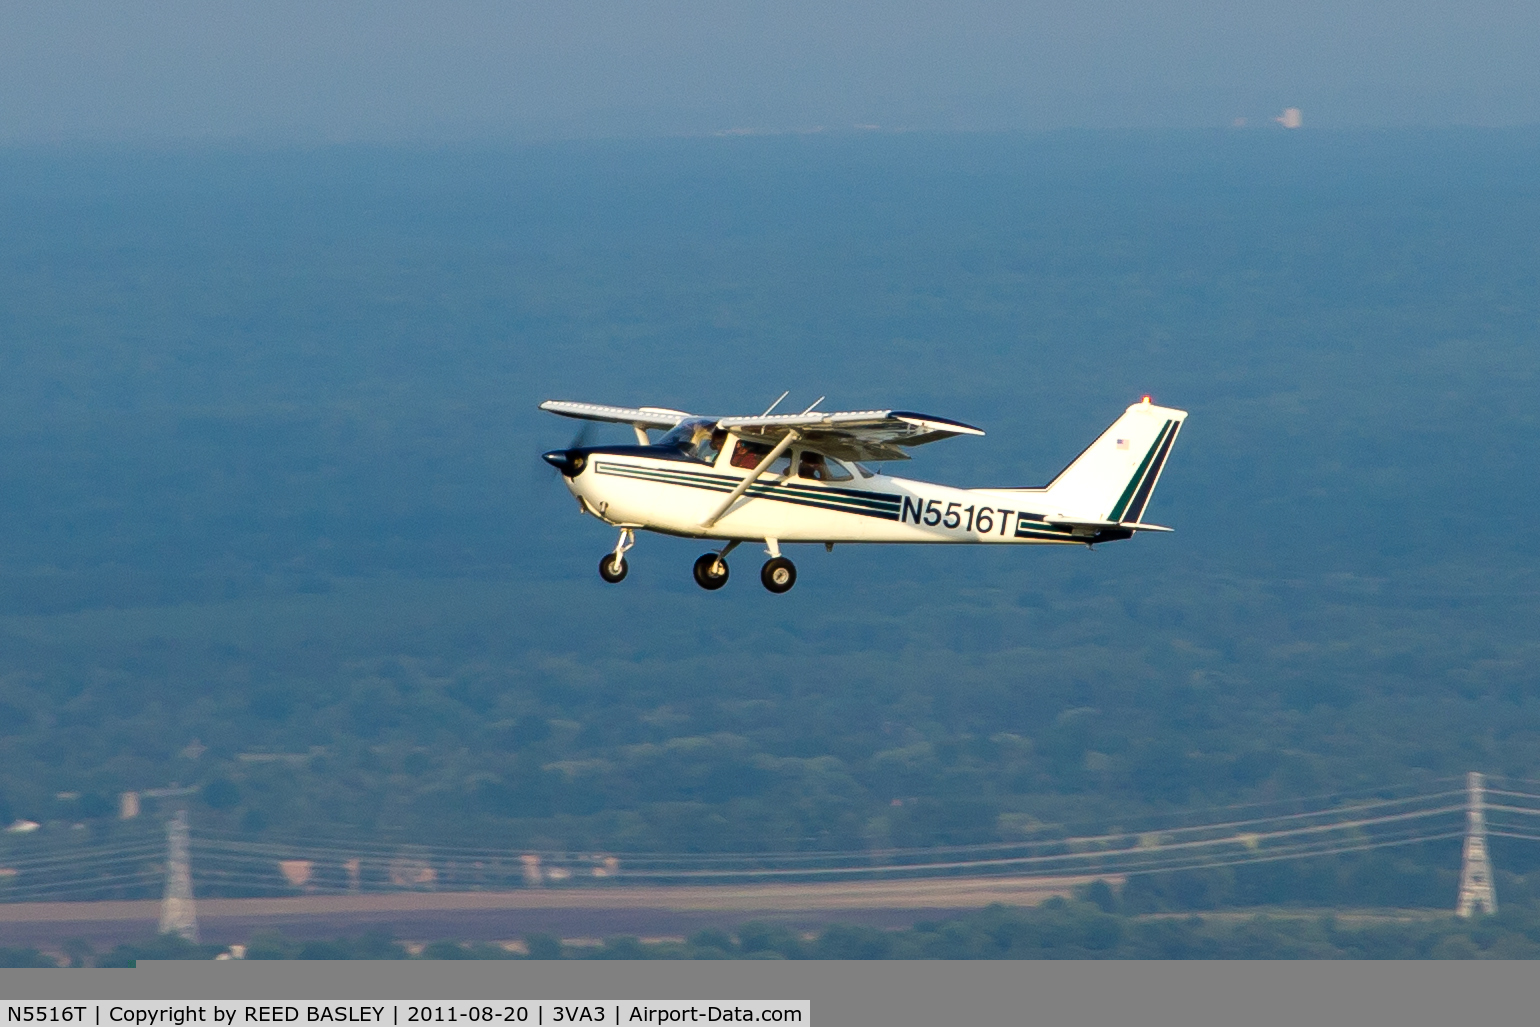 N5516T, 1964 Cessna 172E Skyhawk C/N 17251416, N5516T IN FLIGHT